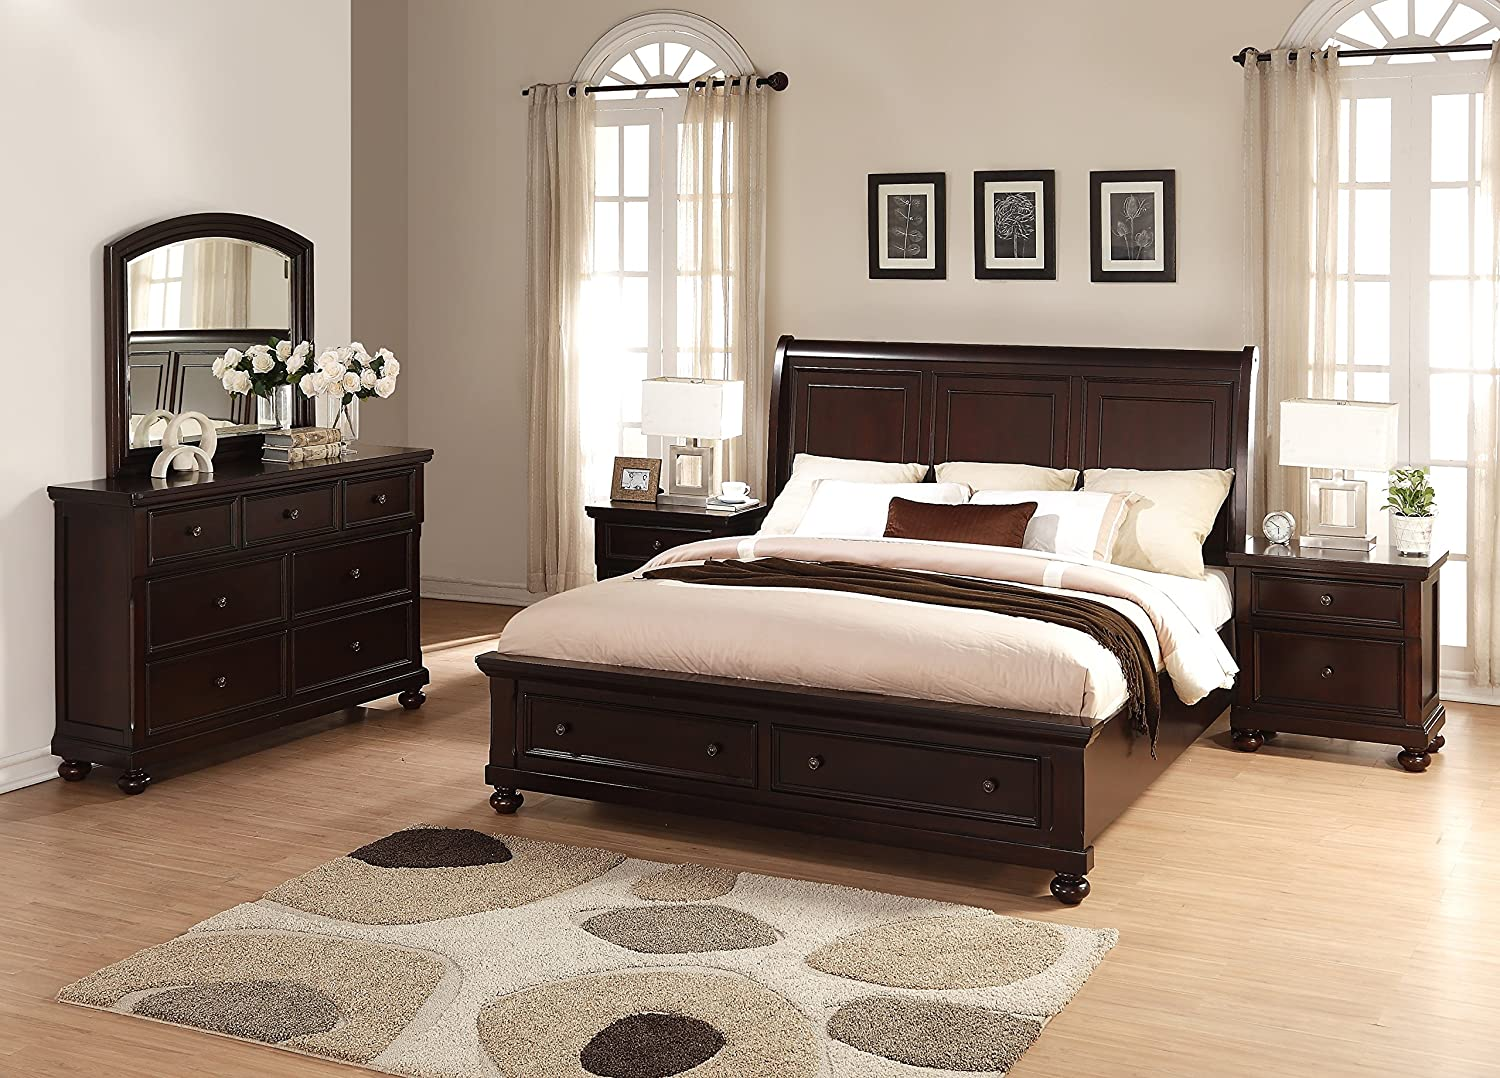 specials sets set and download ashley bedroom furniture deals from